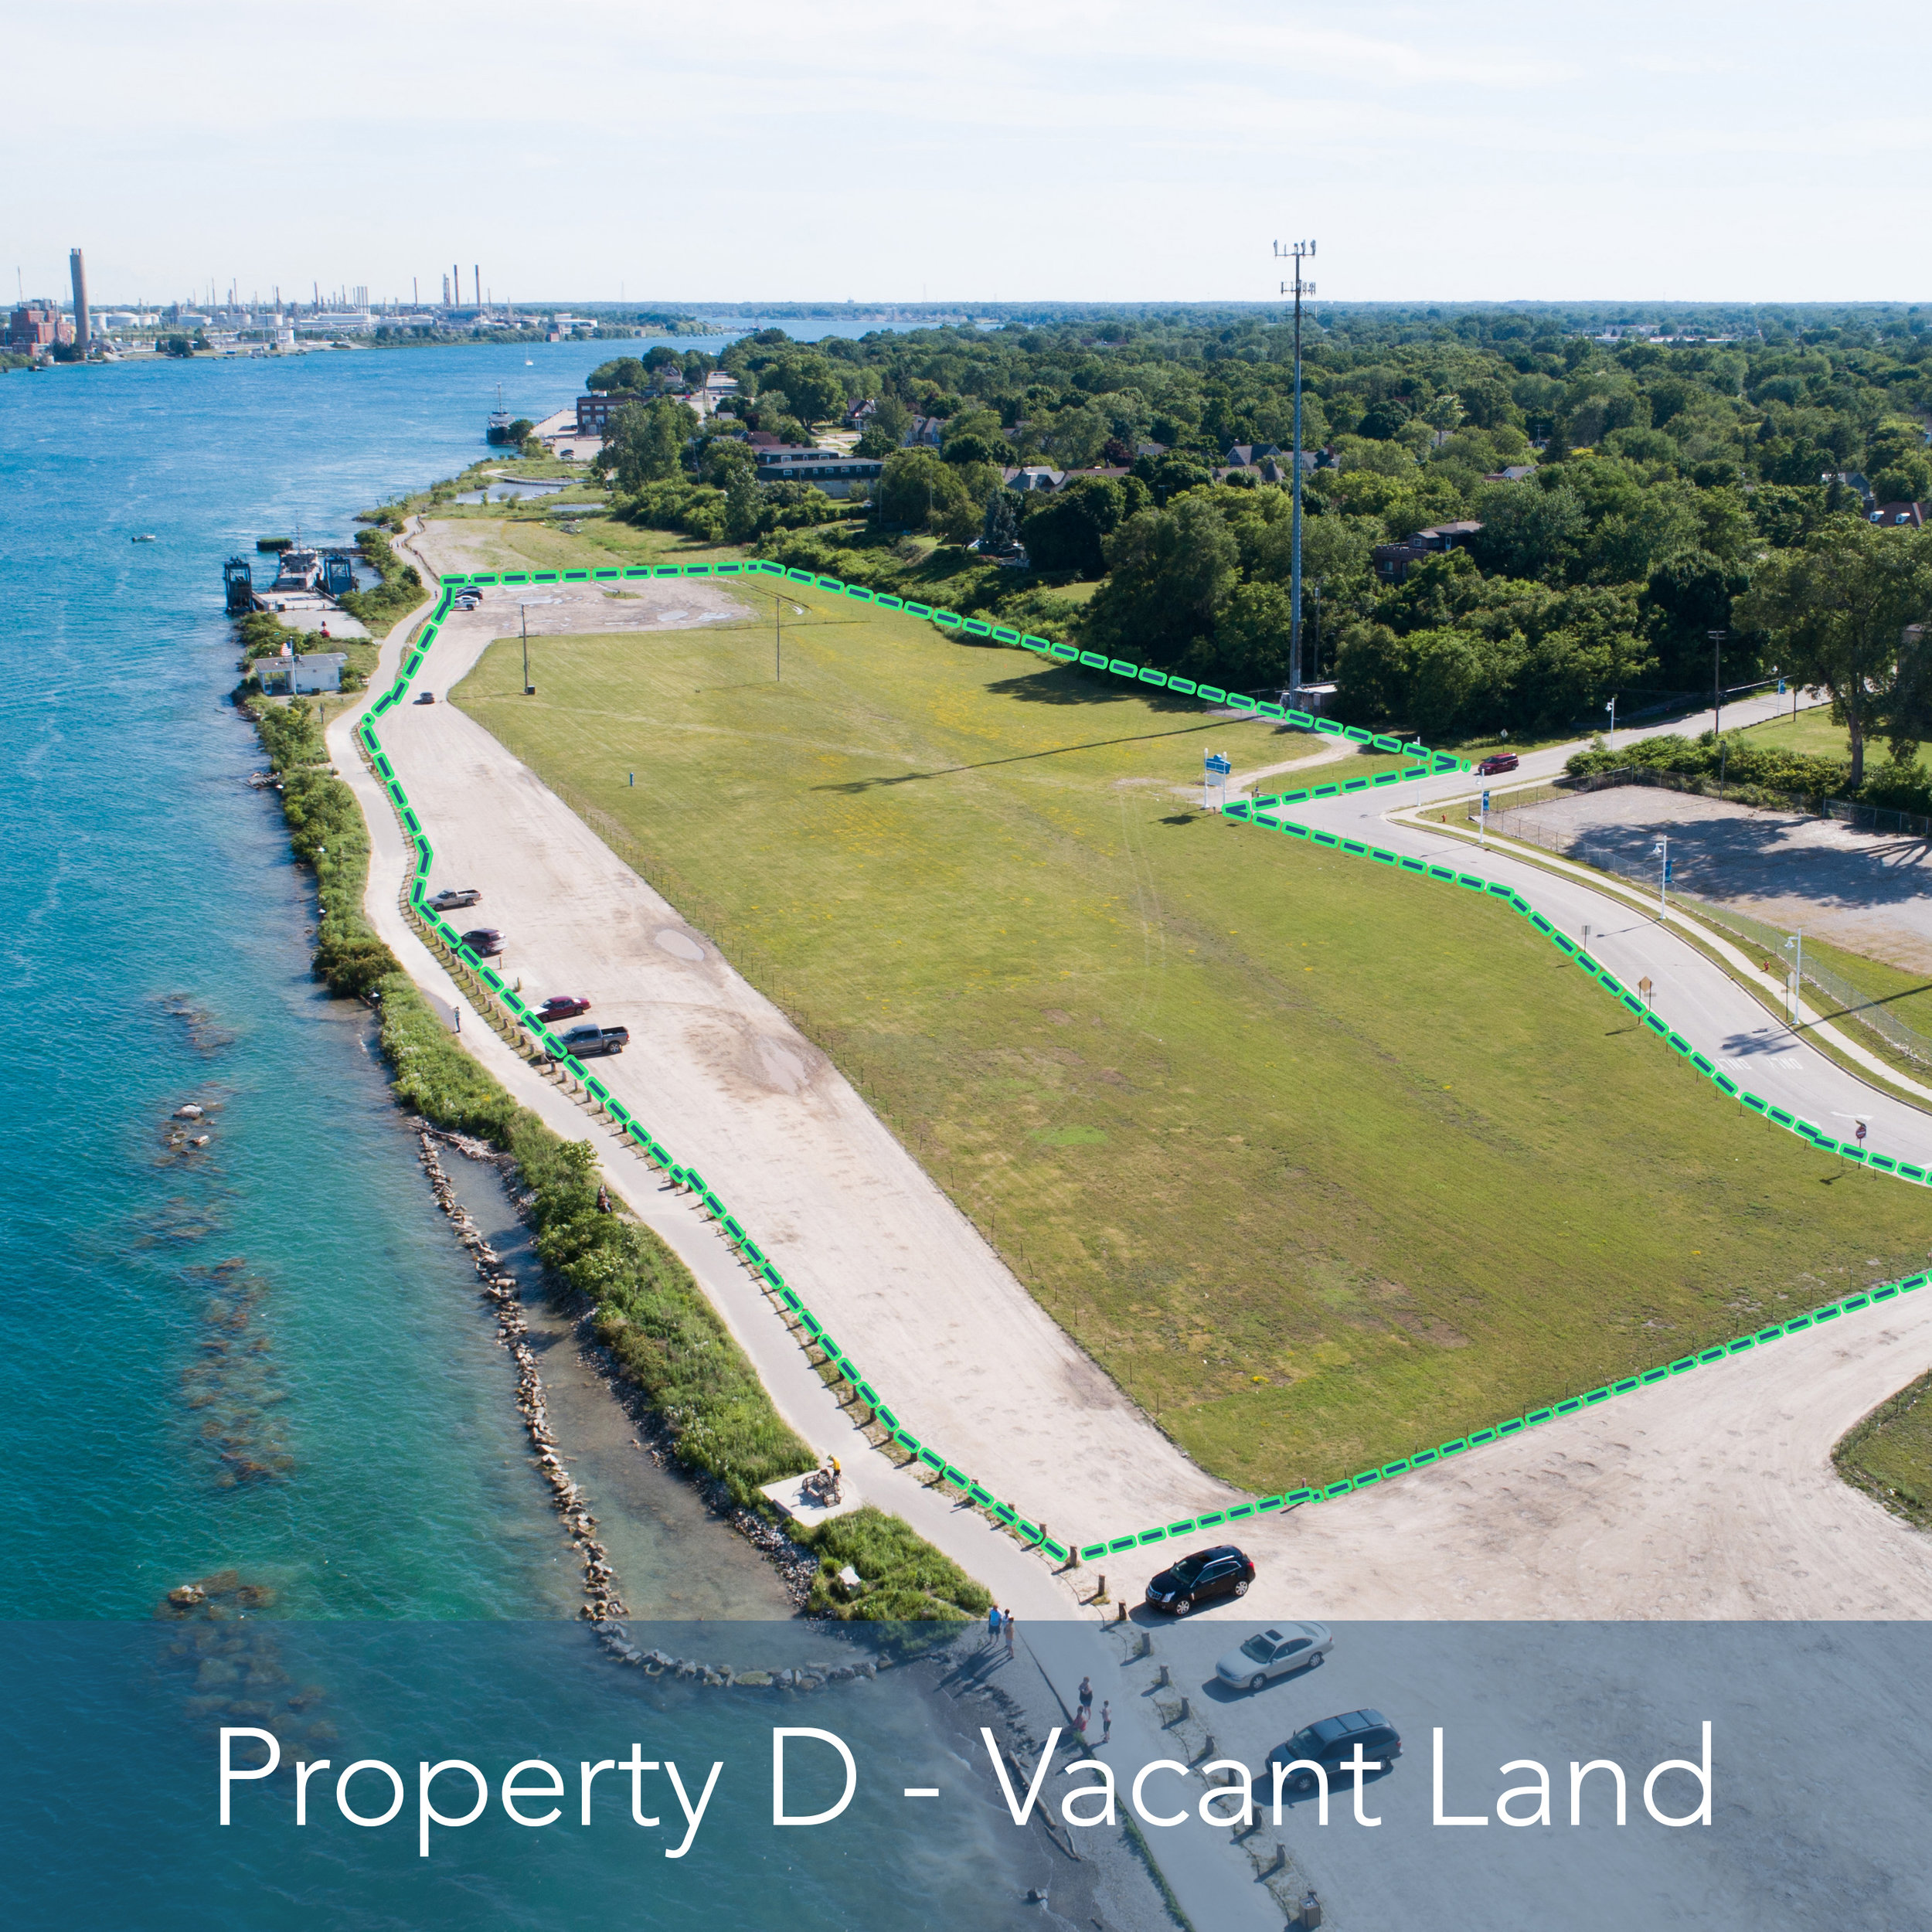 Property D - 8 Acre Vacant Lot   Large vacant lot on the St. Clair River.